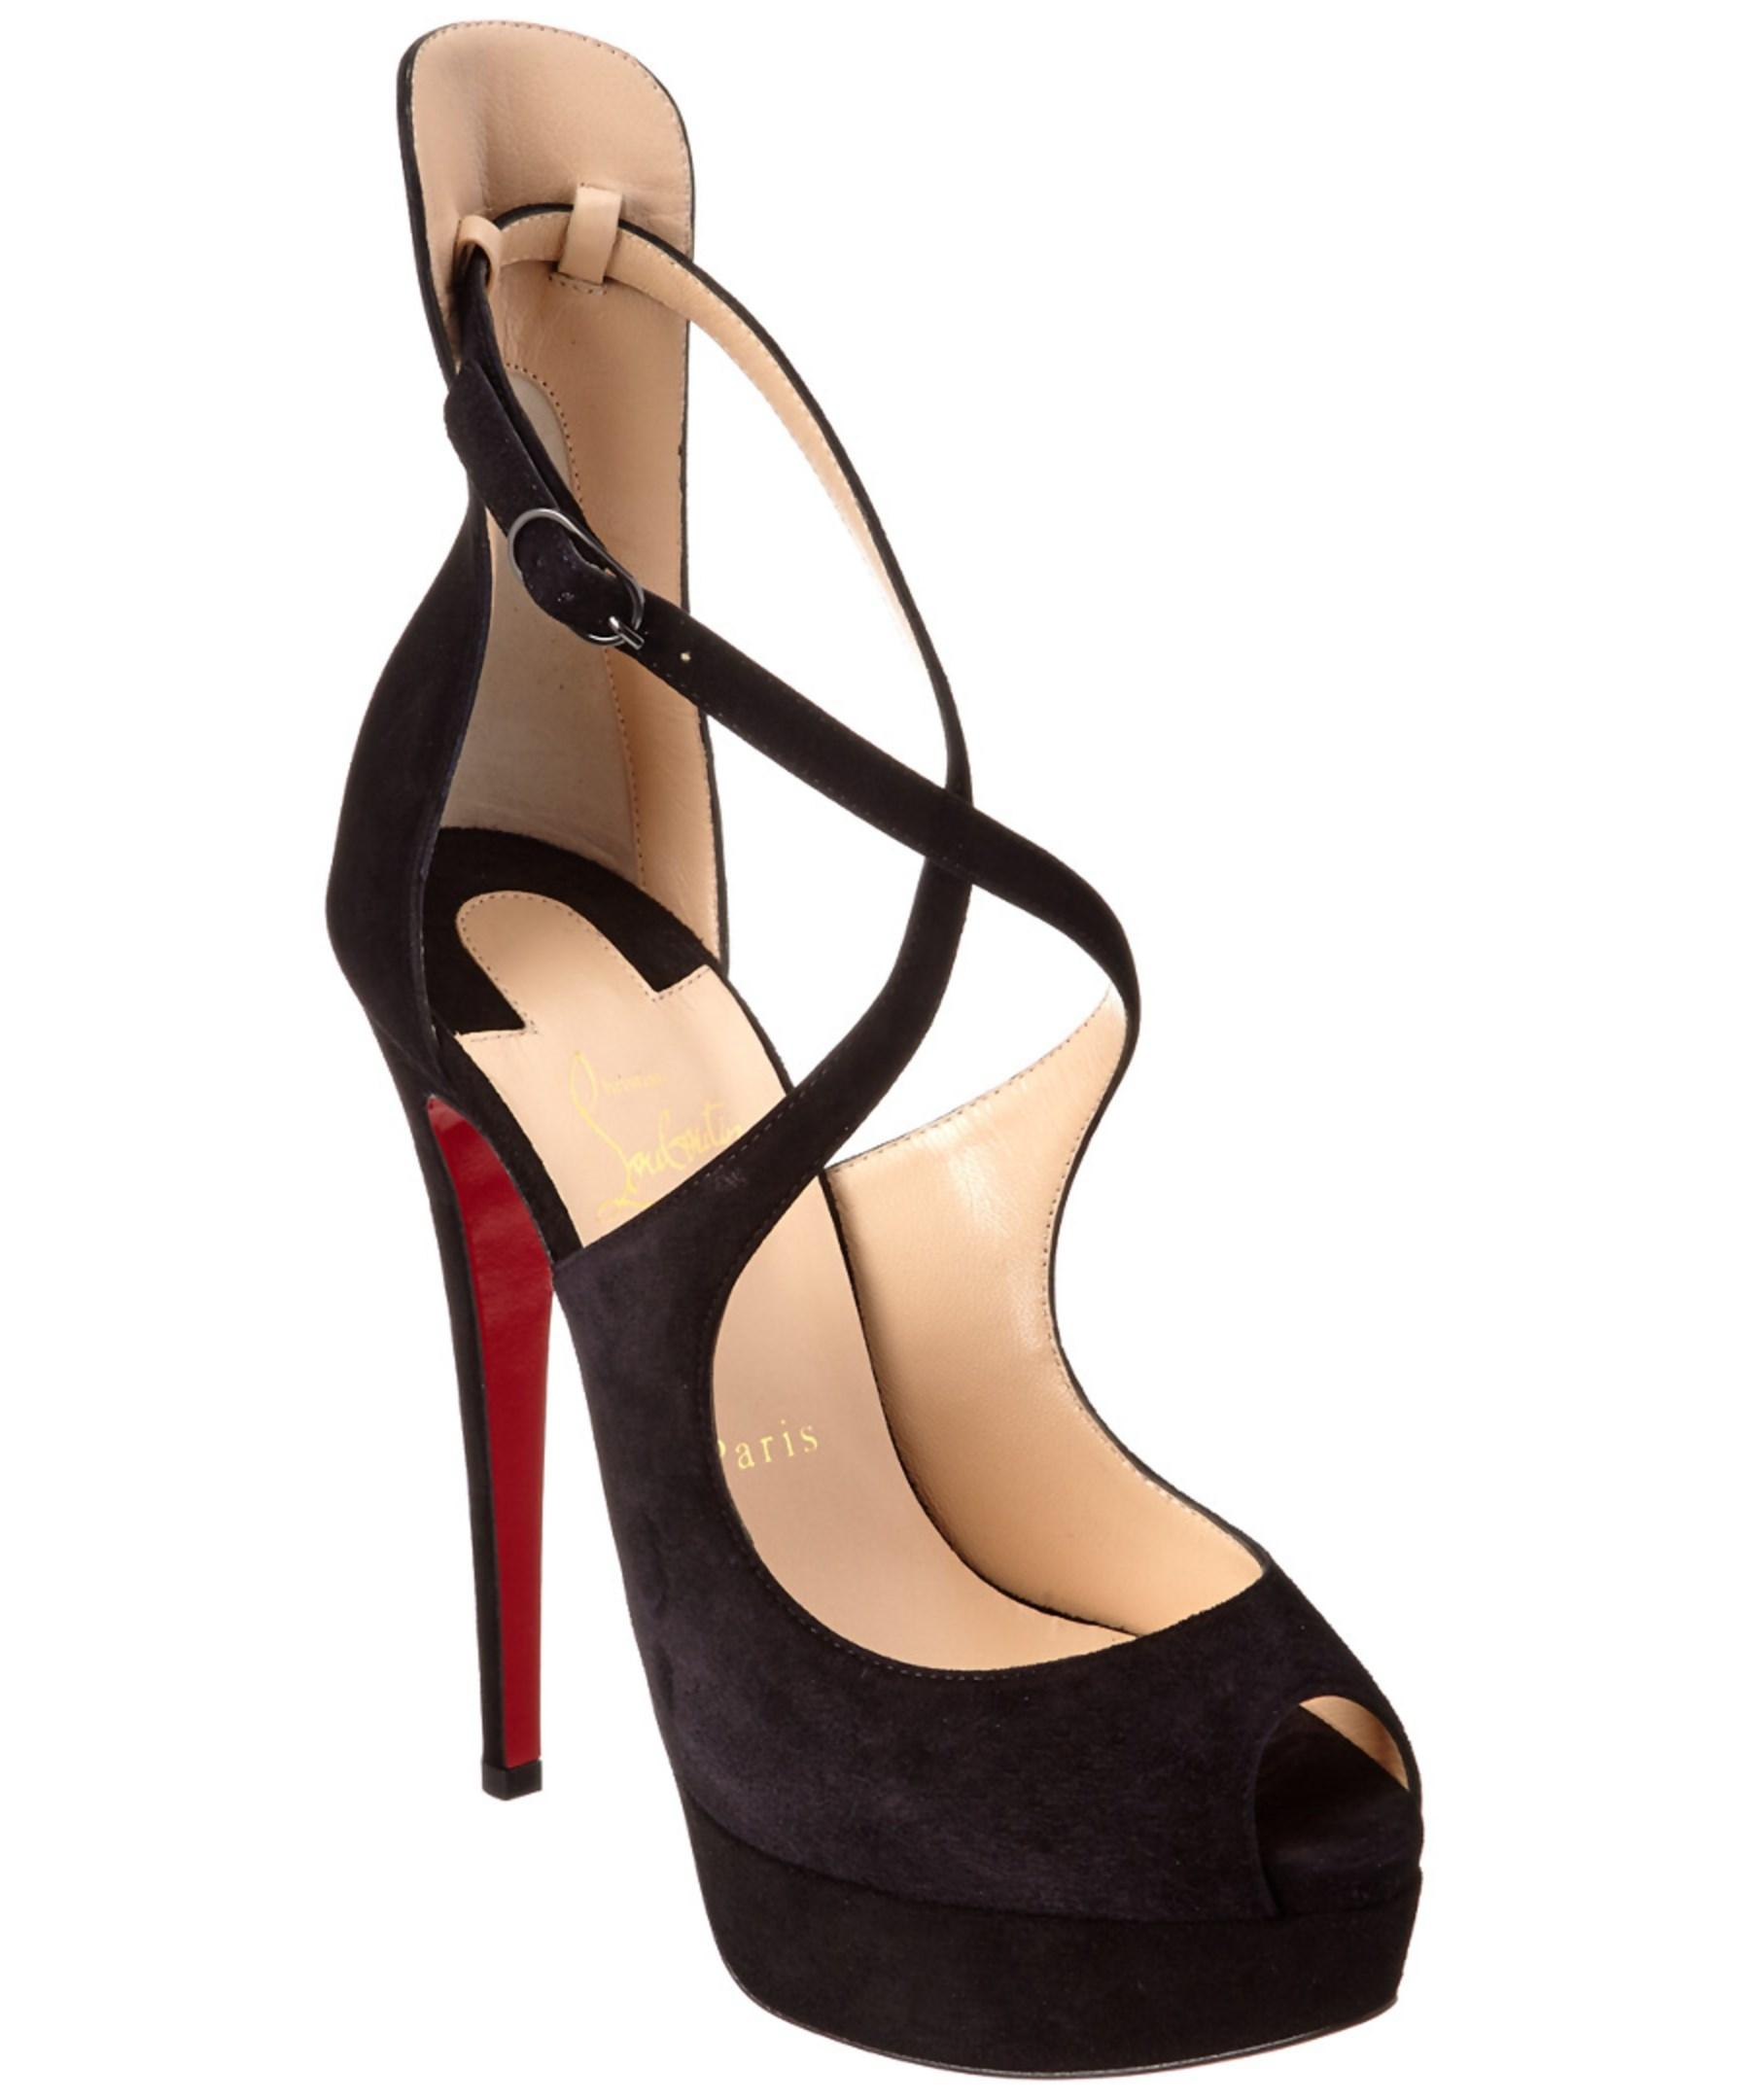 a722cd45e31 Lyst - Christian Louboutin Marlenalta 150 Suede Platform Pump in Black